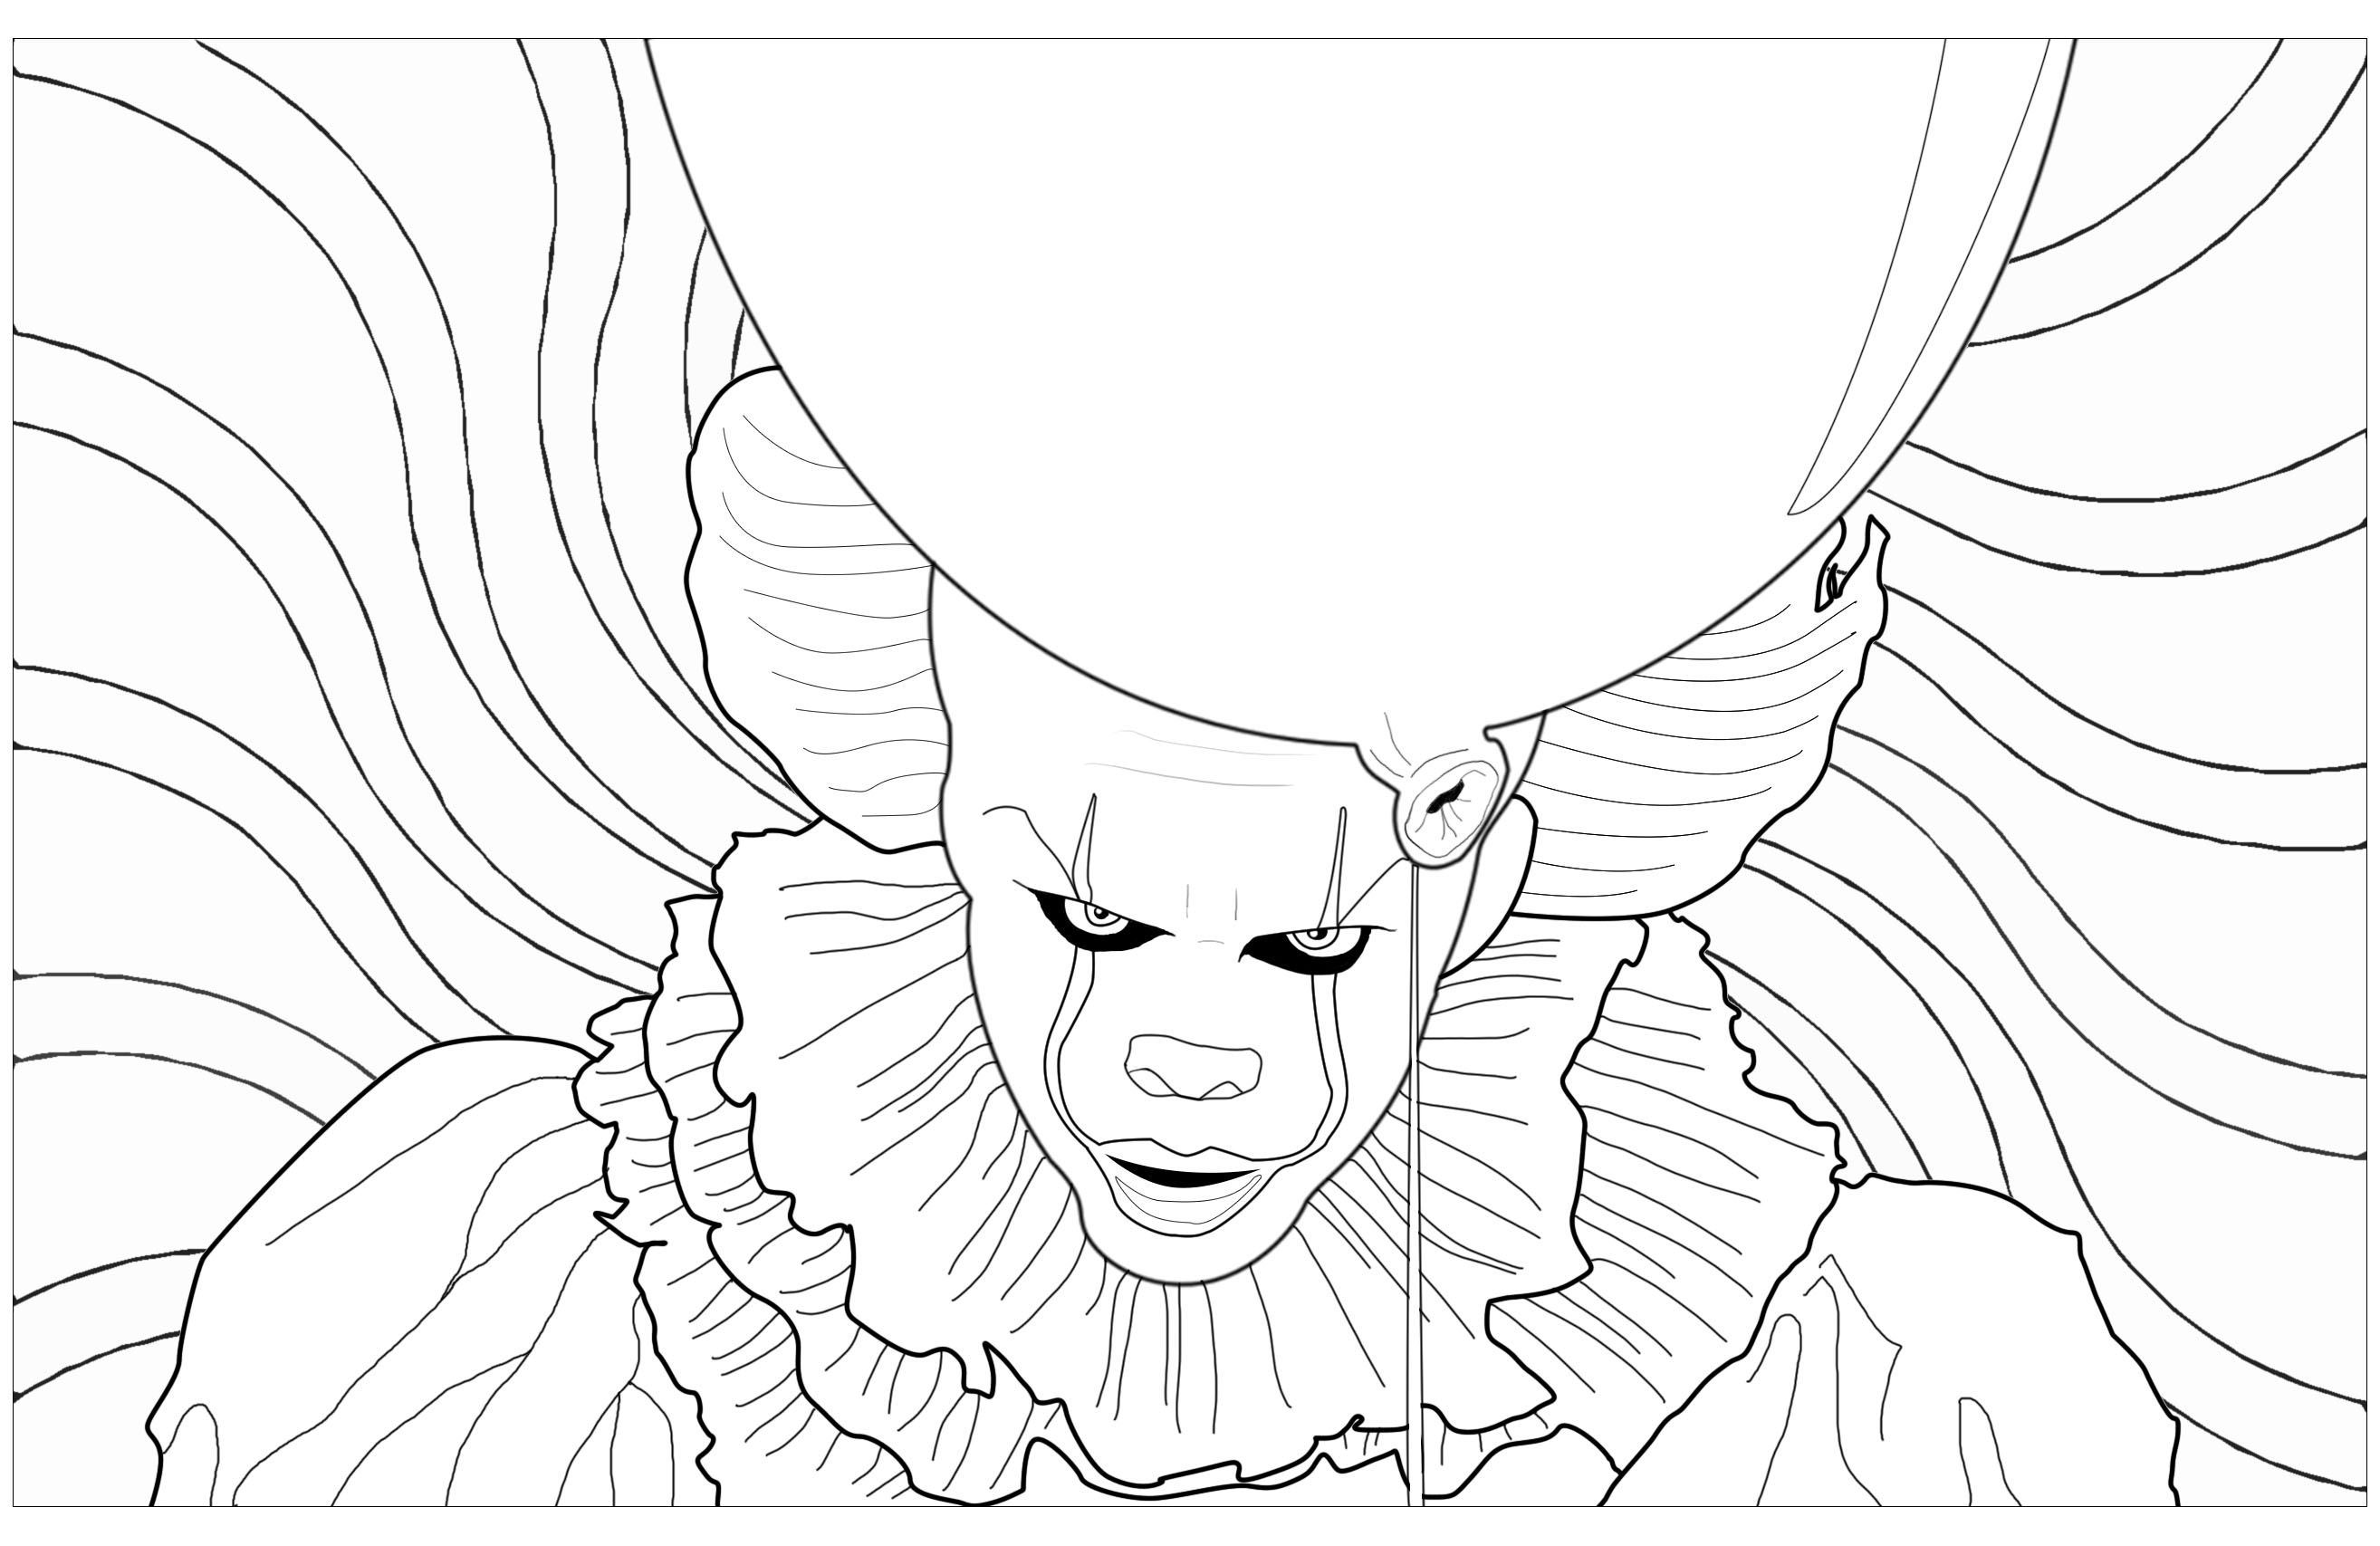 Pennywise The Maleficent Clown From The 2017 Movie It From Stephen King Nov Halloween Coloring Pages Printable Halloween Coloring Pictures Halloween Coloring